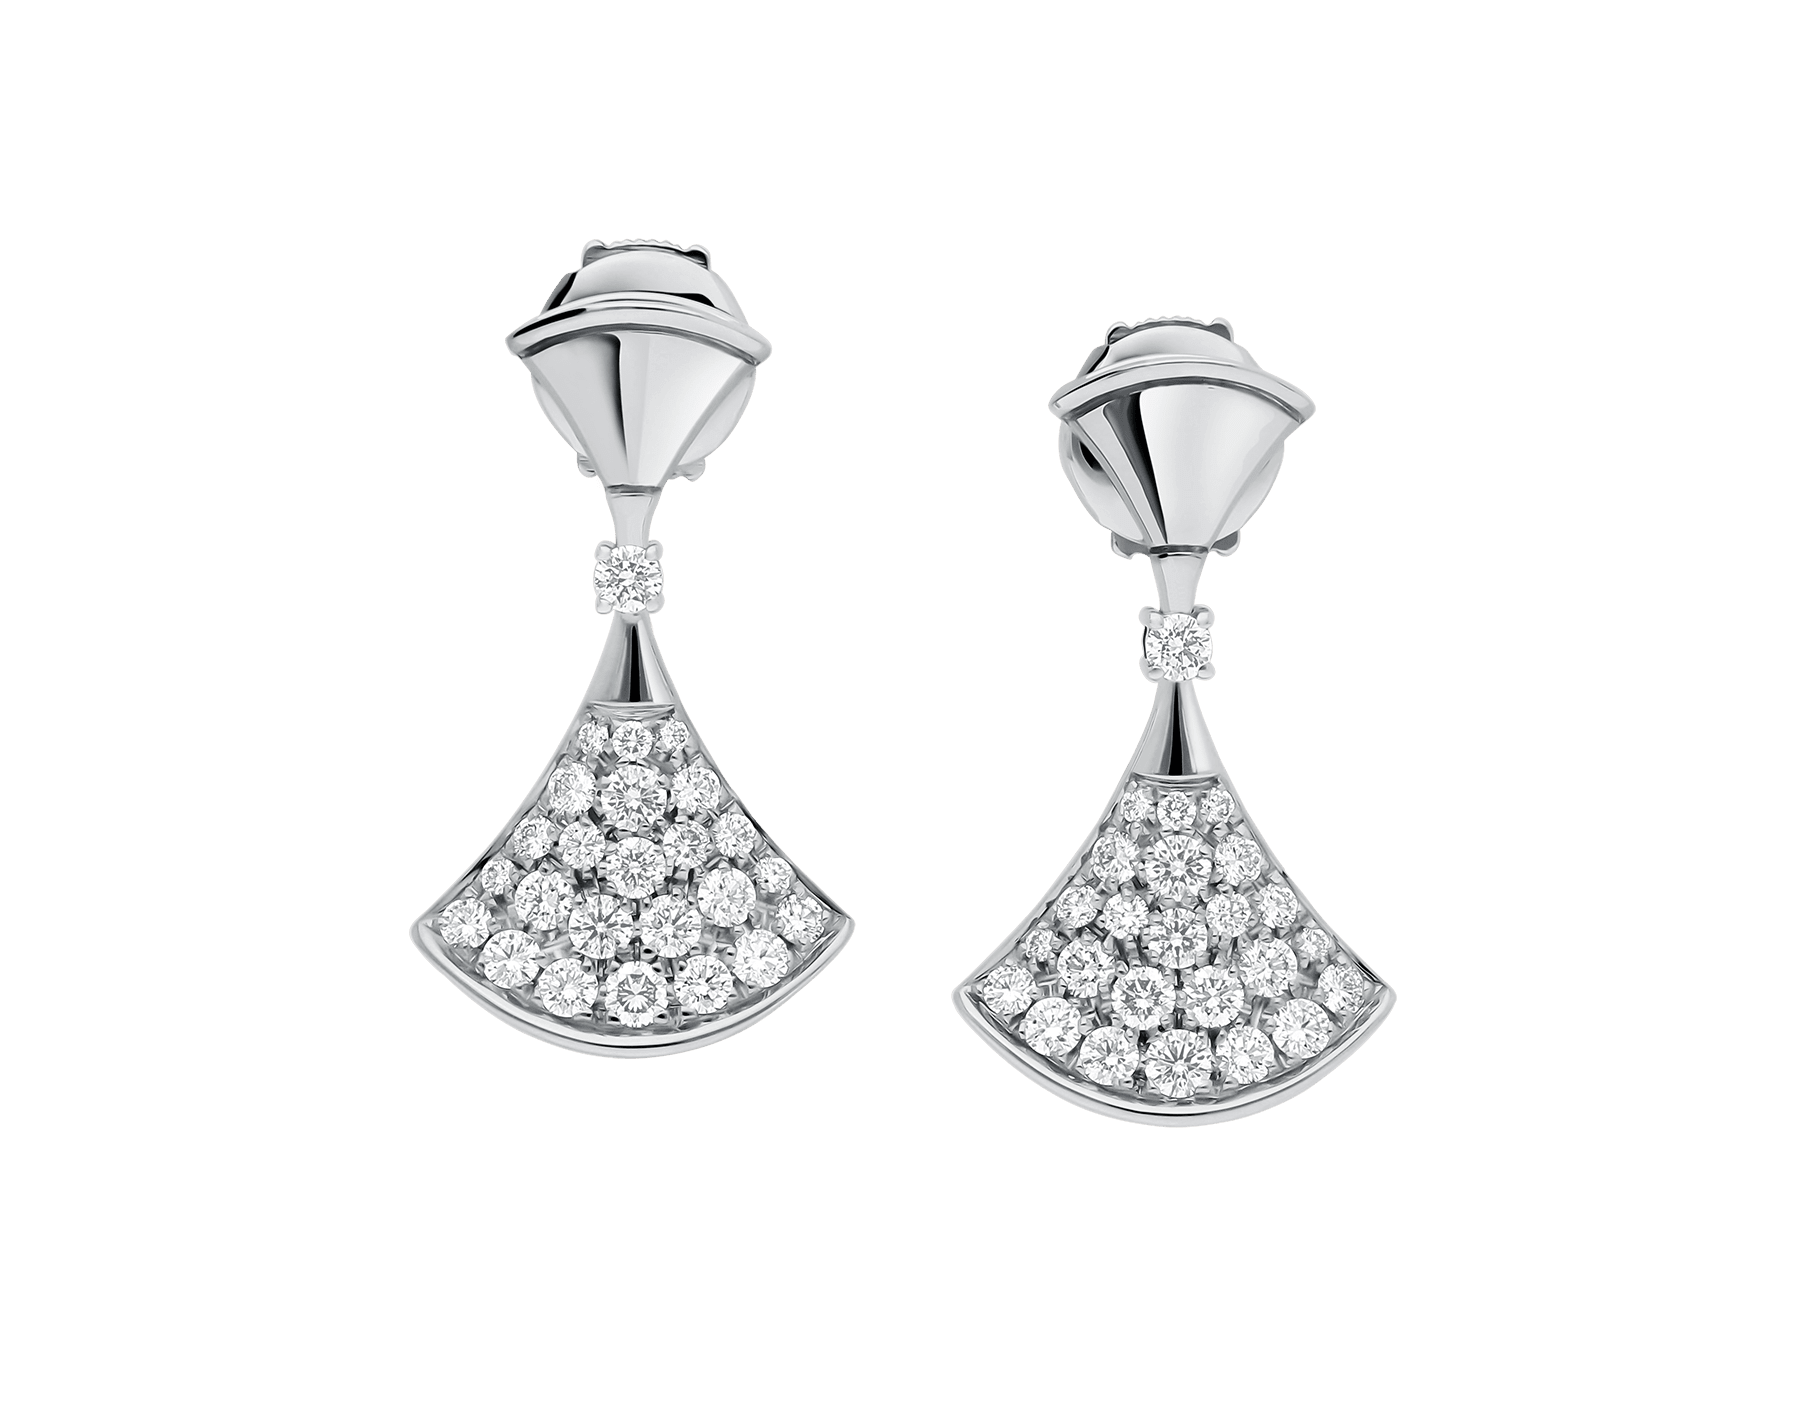 DIVAS' DREAM earrings in 18 kt white gold set with a diamond and pavé diamonds. 351100 image 2